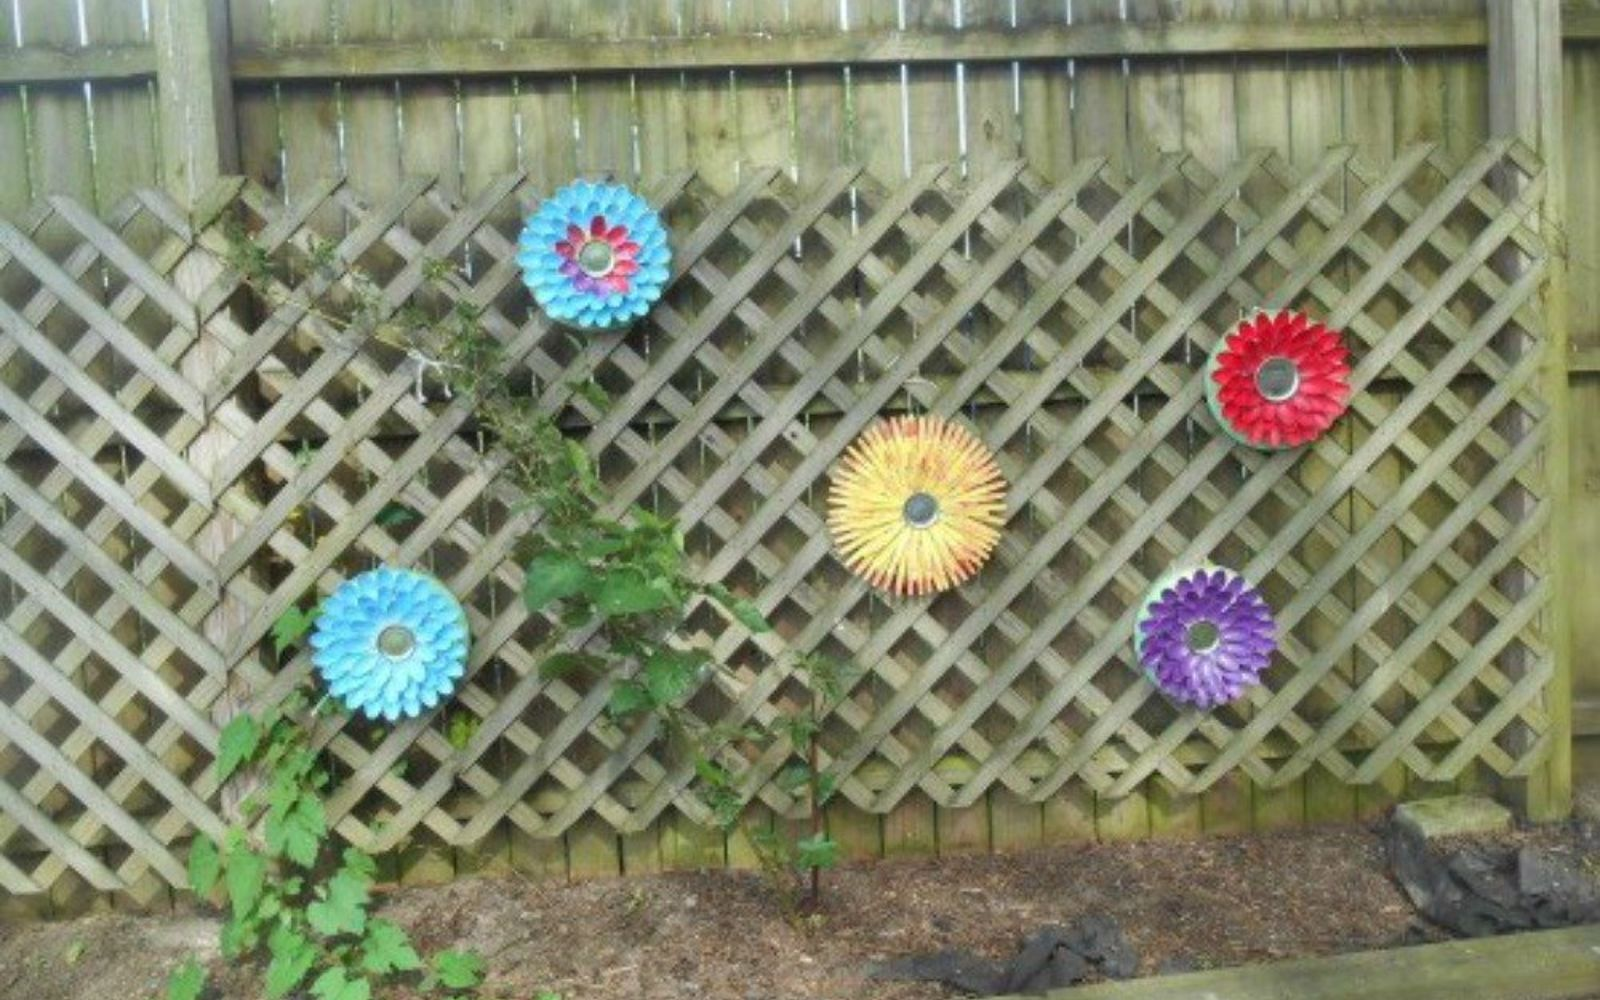 s 11 brilliant ways to reuse plastic spoons, Paint them into colorful fence flowers